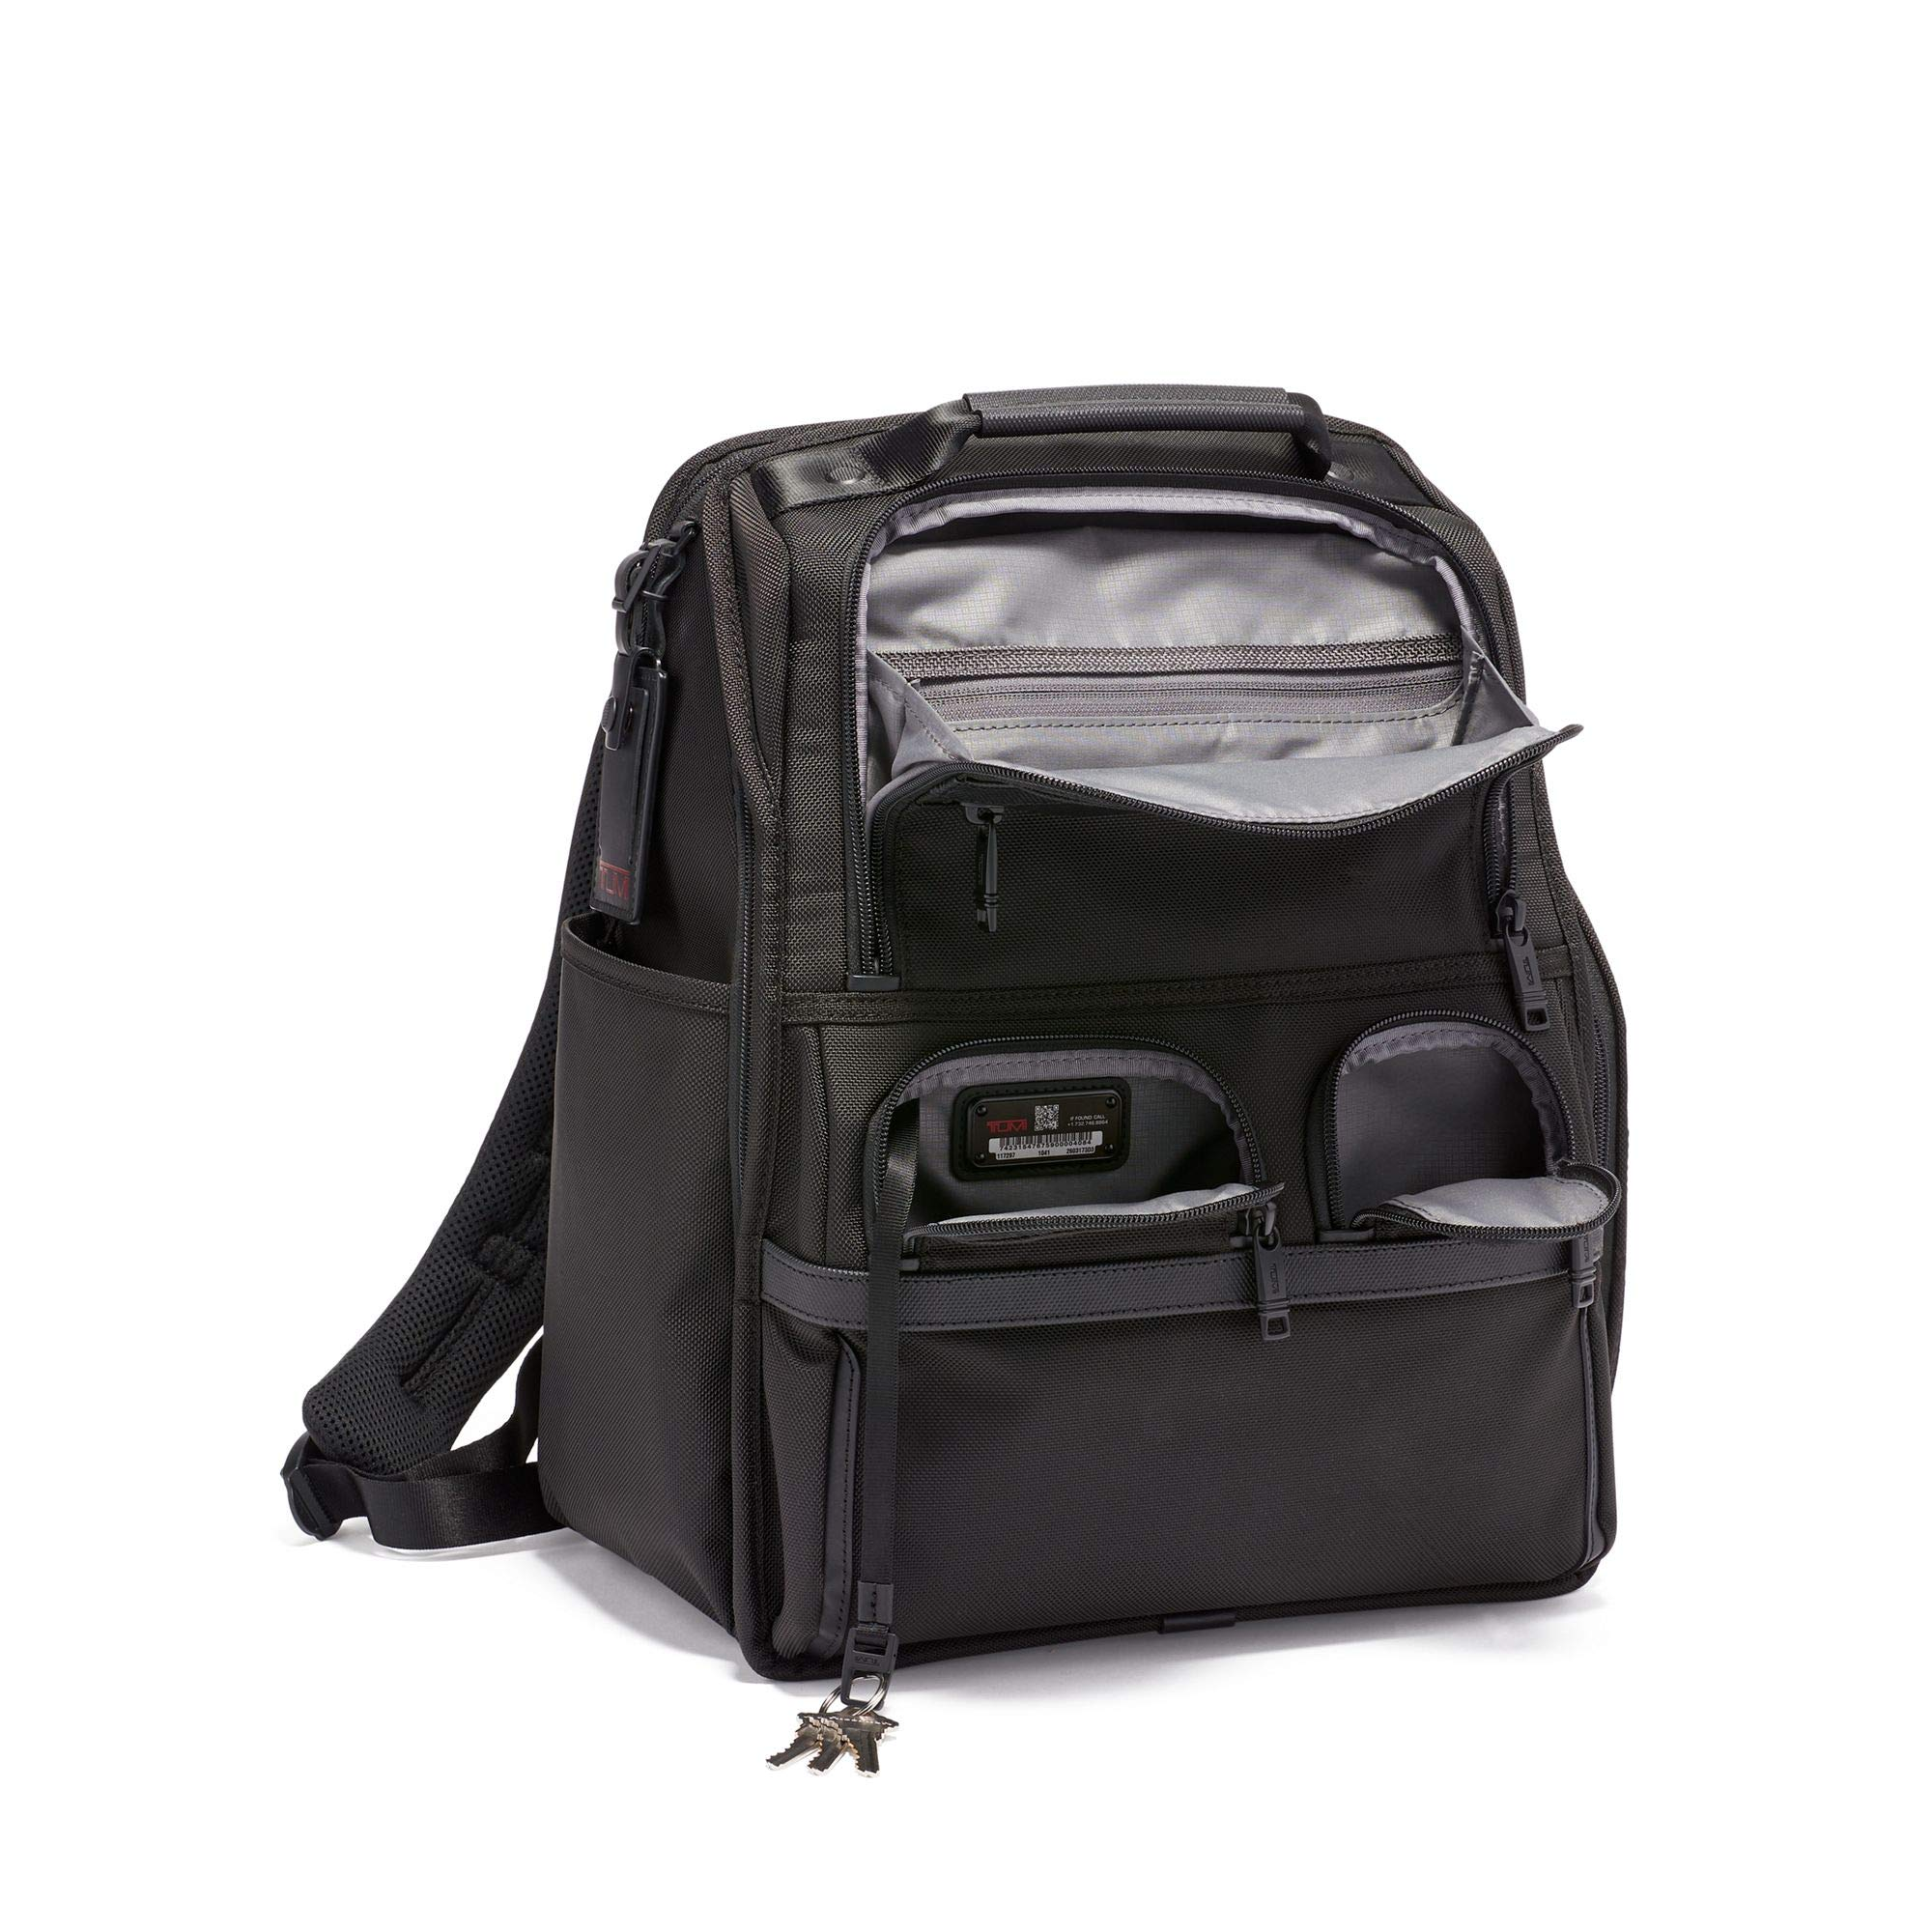 TUMI - Alpha 3 Compact Laptop Brief Pack - 15 Inch Computer Backpack for Men and Women - Black by TUMI (Image #3)